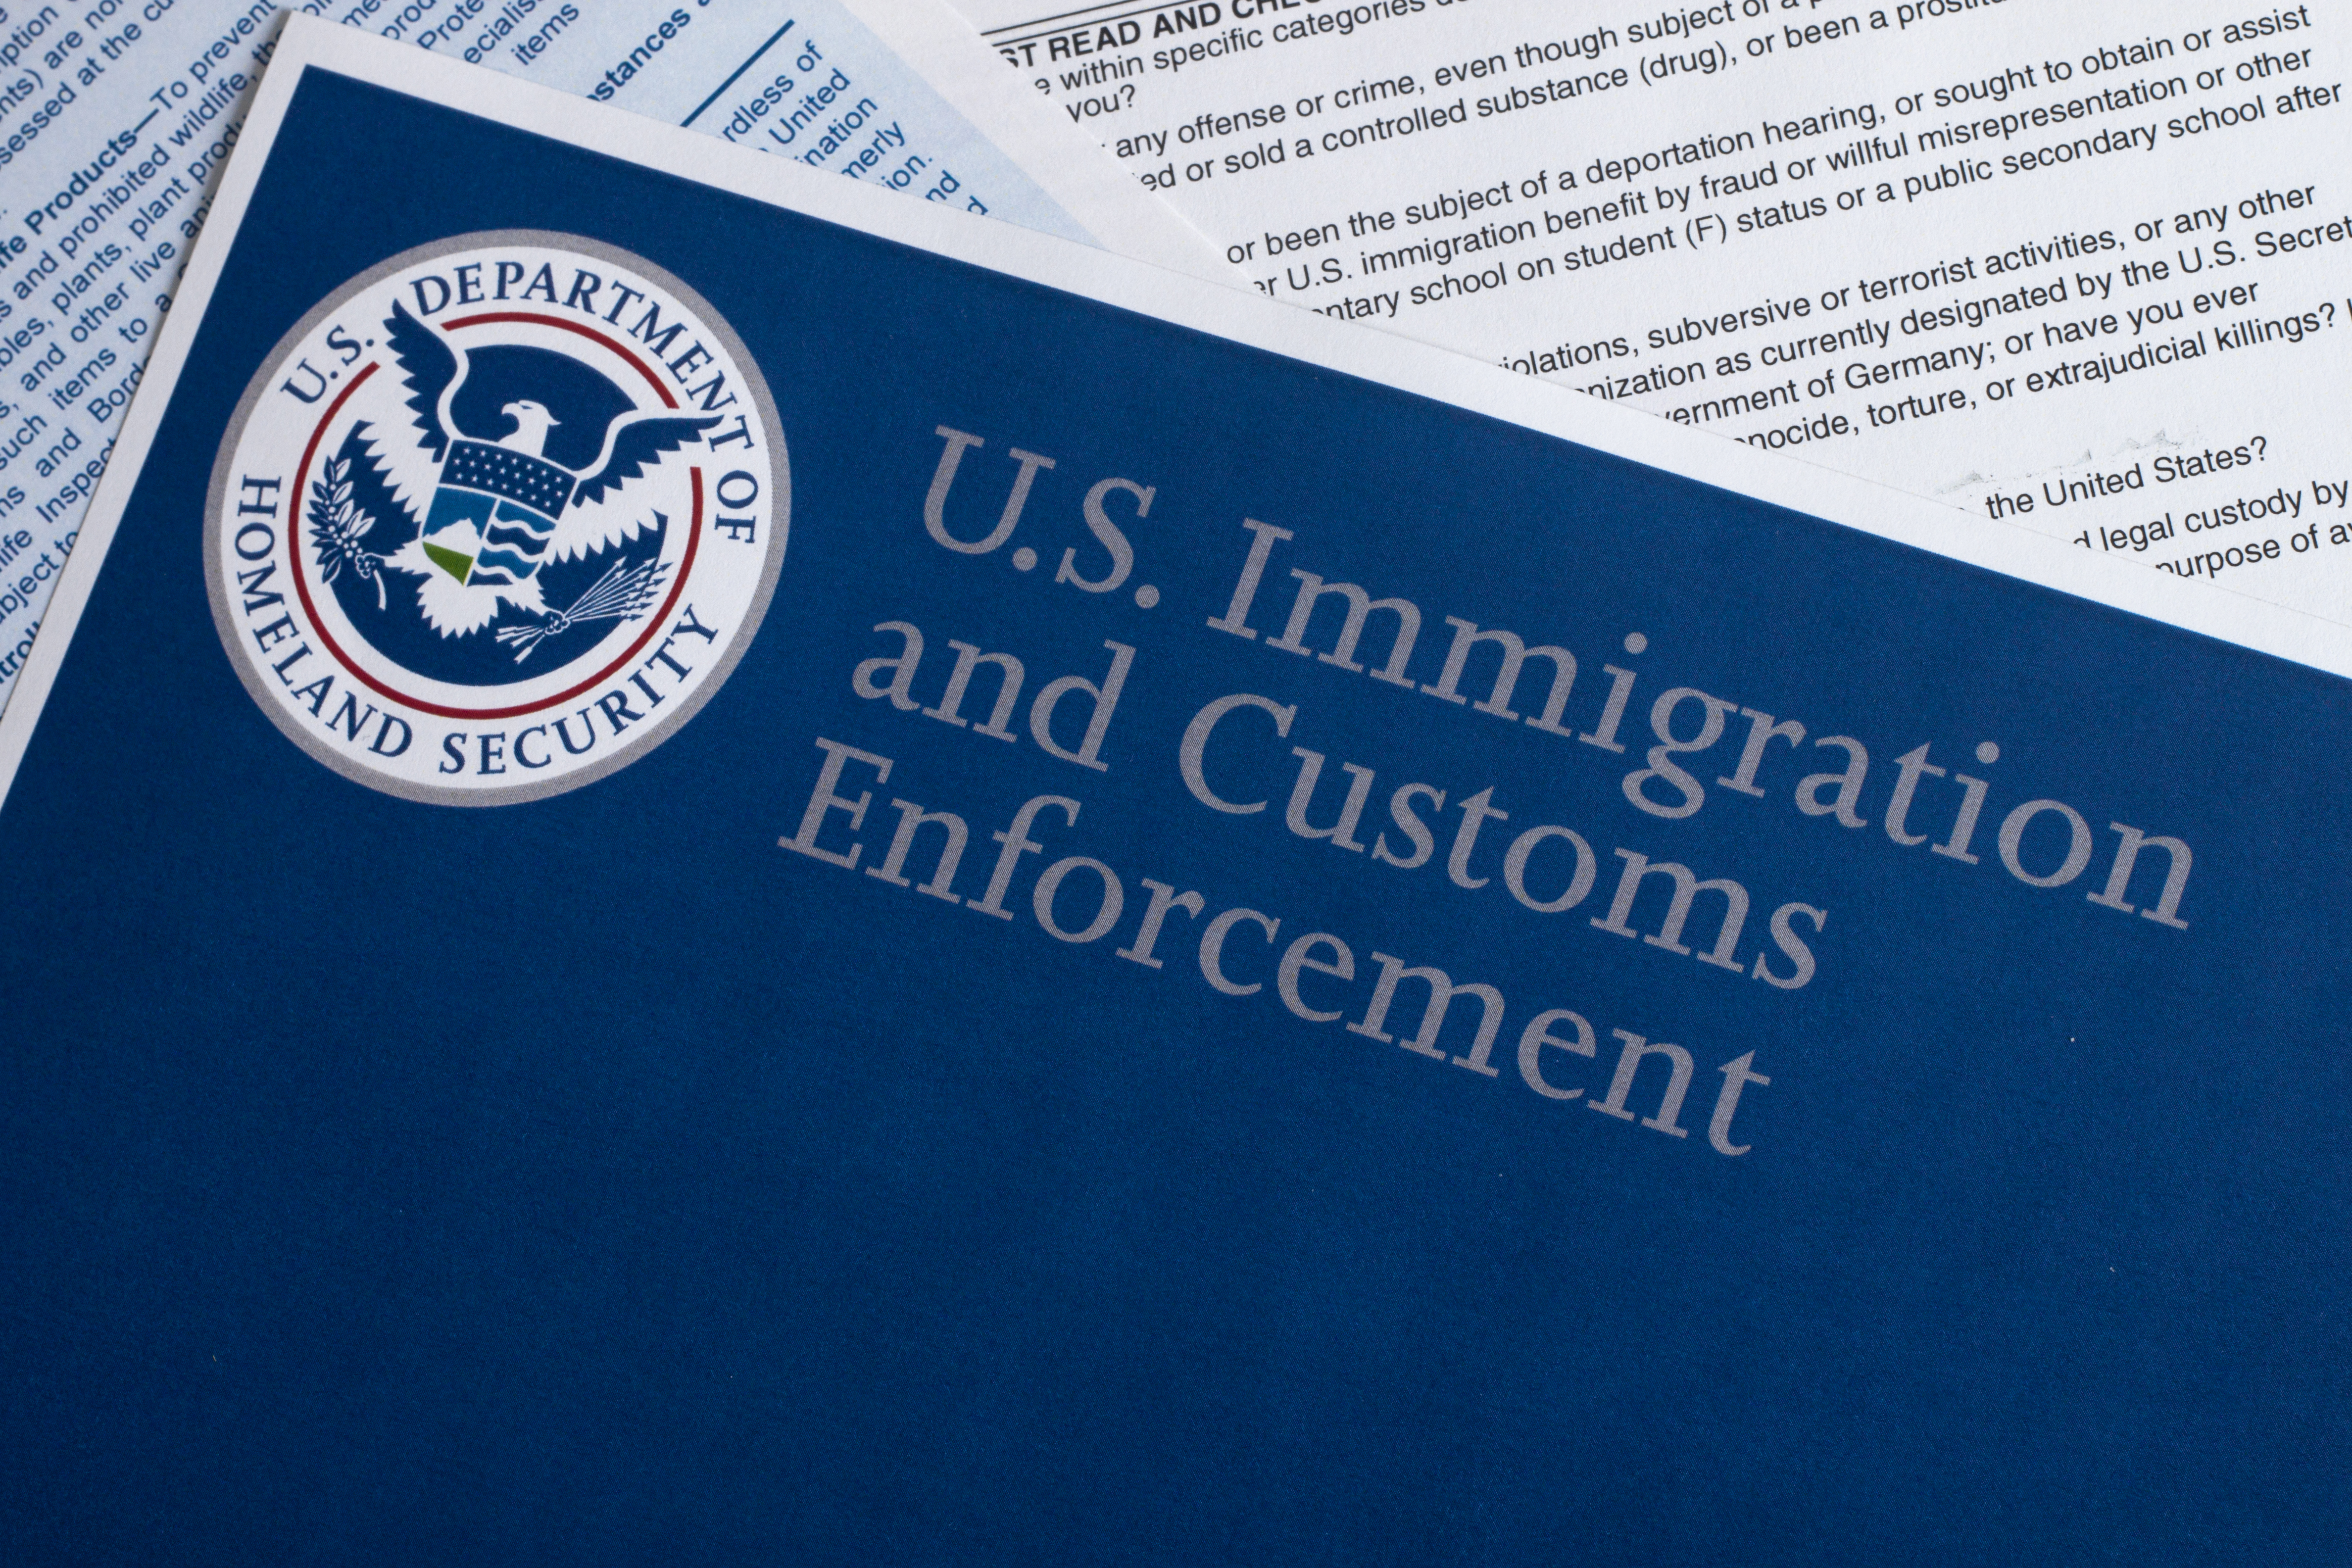 U.S. Immigration and Customs Enforcement Folder